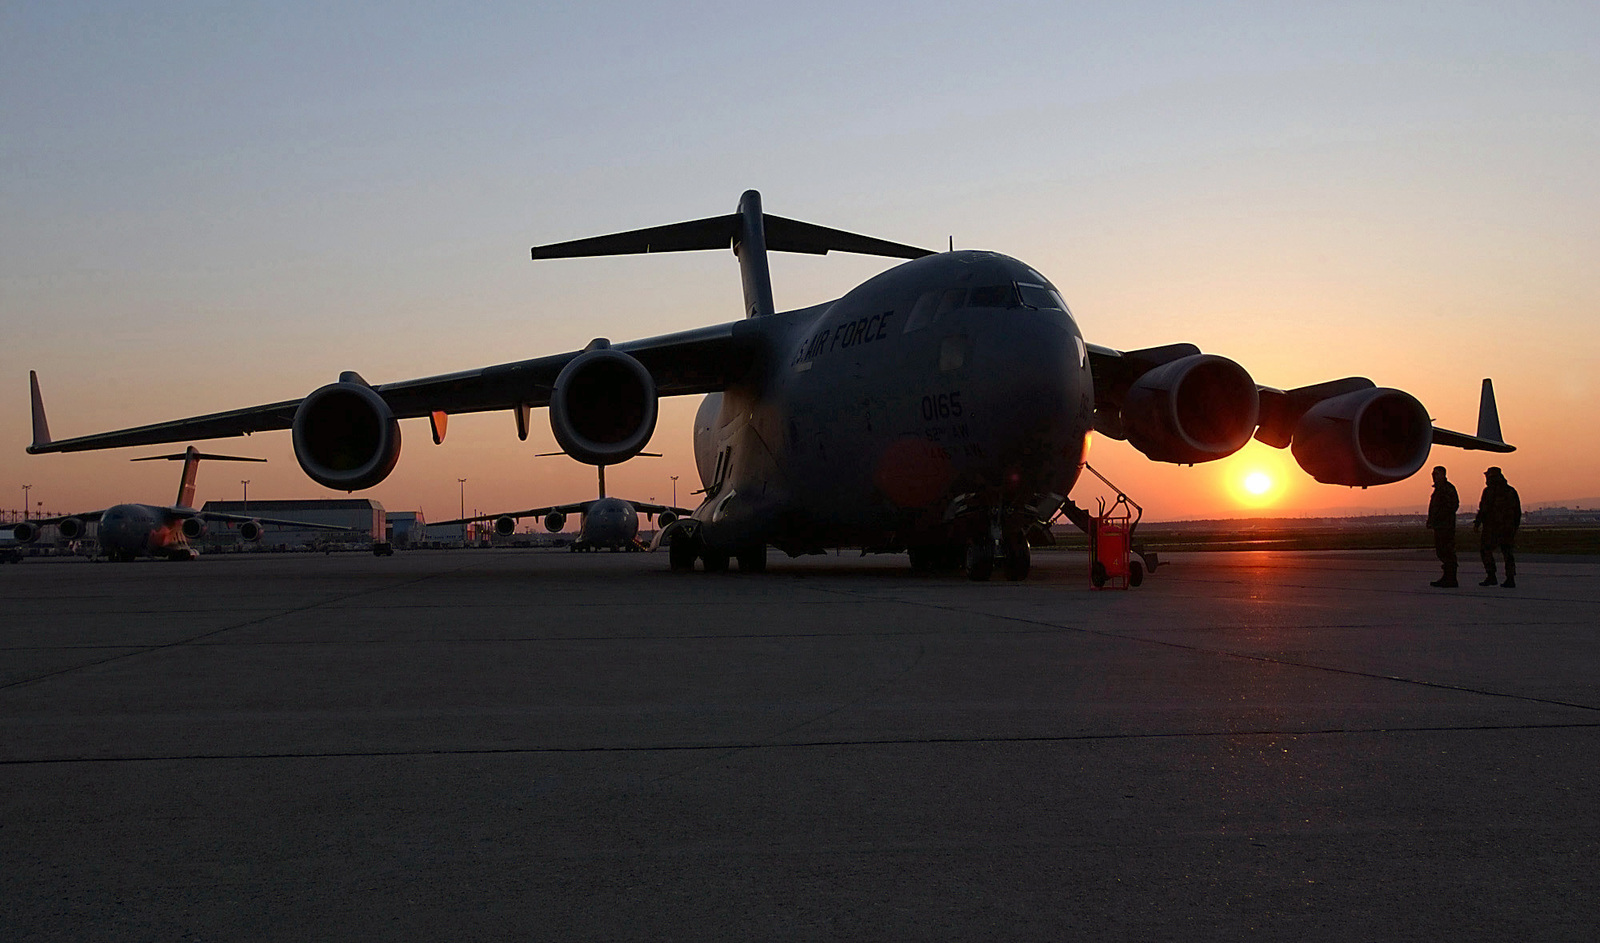 On the flightline at Rhein-Main Air Base, Germany, two US Air Force maintenance members stand beside a C-17A Globemaster III at sunset during Operation ENDURING FREEDOM